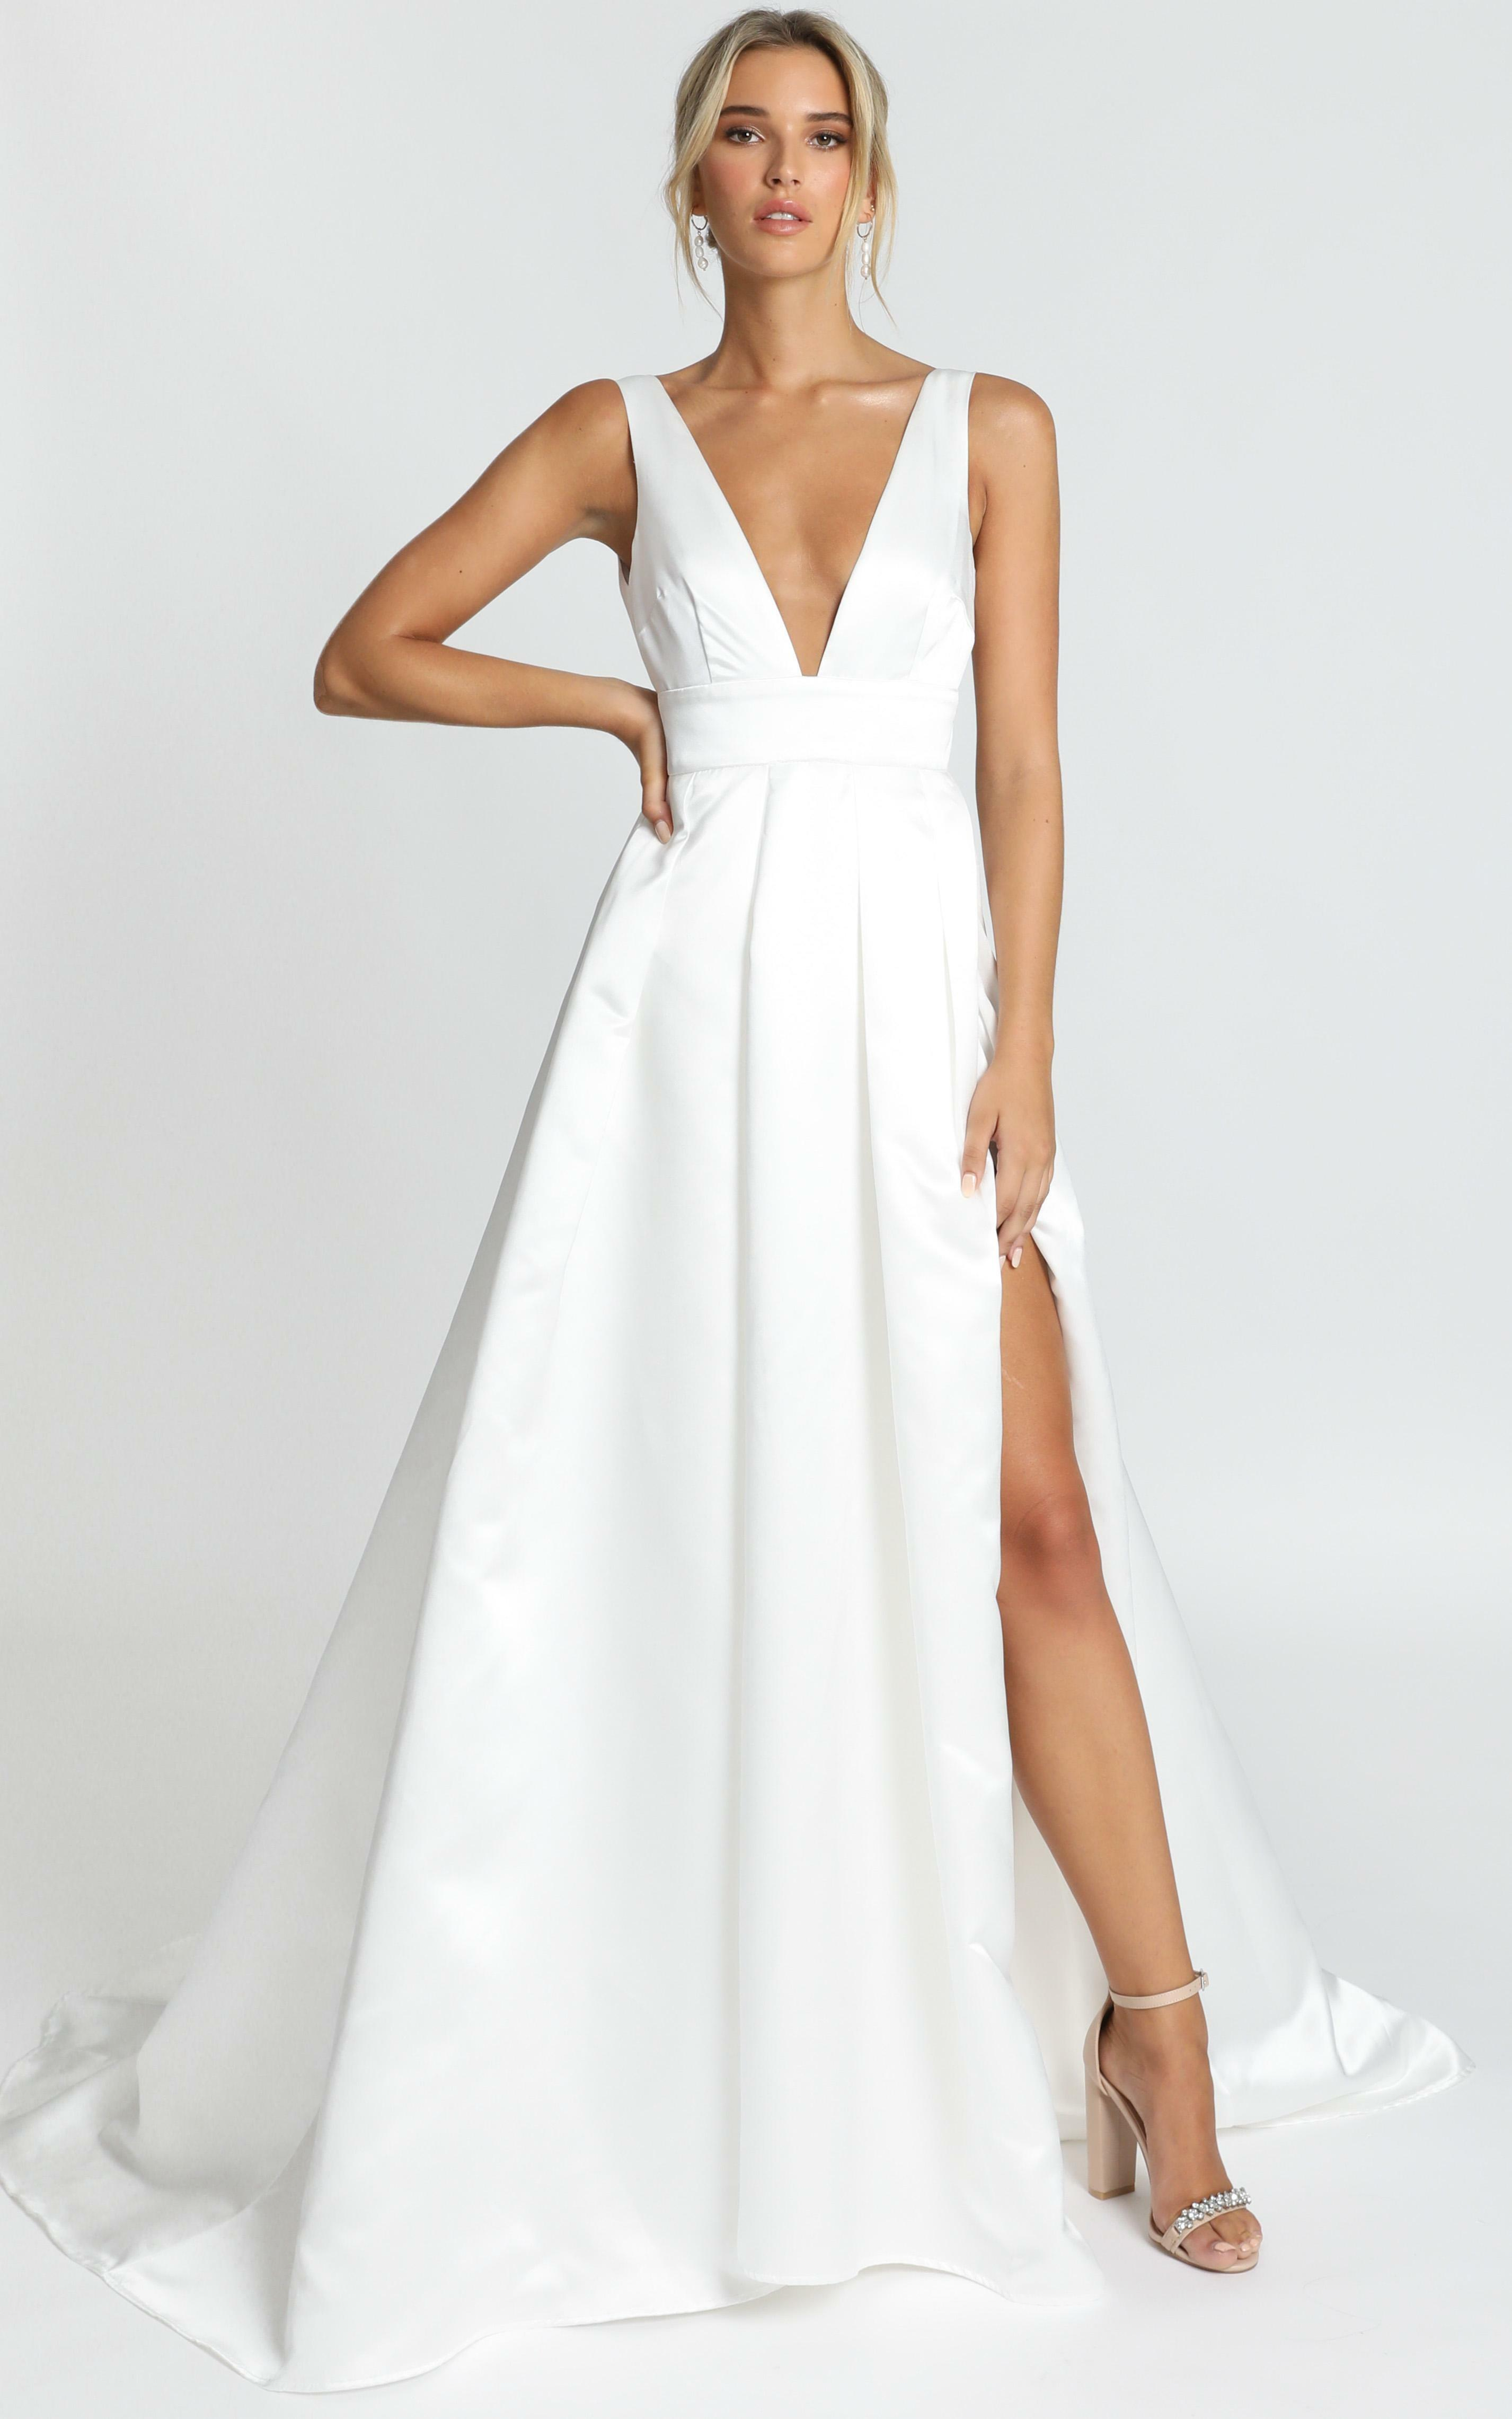 Eyes Of The Beholder Gown in white - 6 (XS), White, hi-res image number null